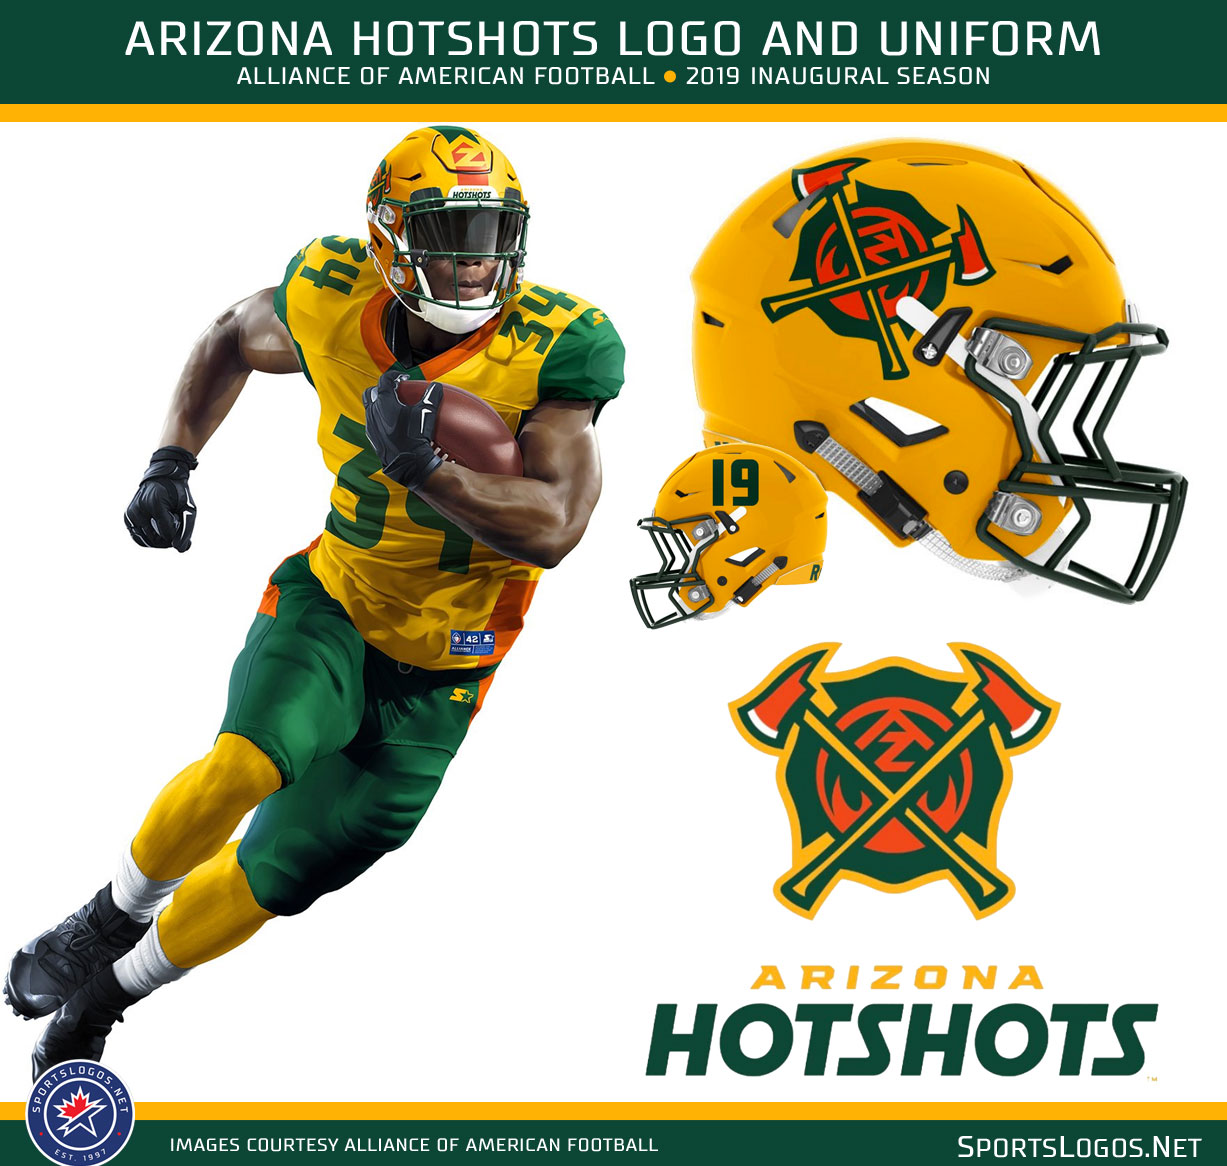 9682f8f5beb The Arizona Hotshots based their identity on the uniforms worn by U.S.  Forest Service firefighters that help battle blazes in throughout Arizona.